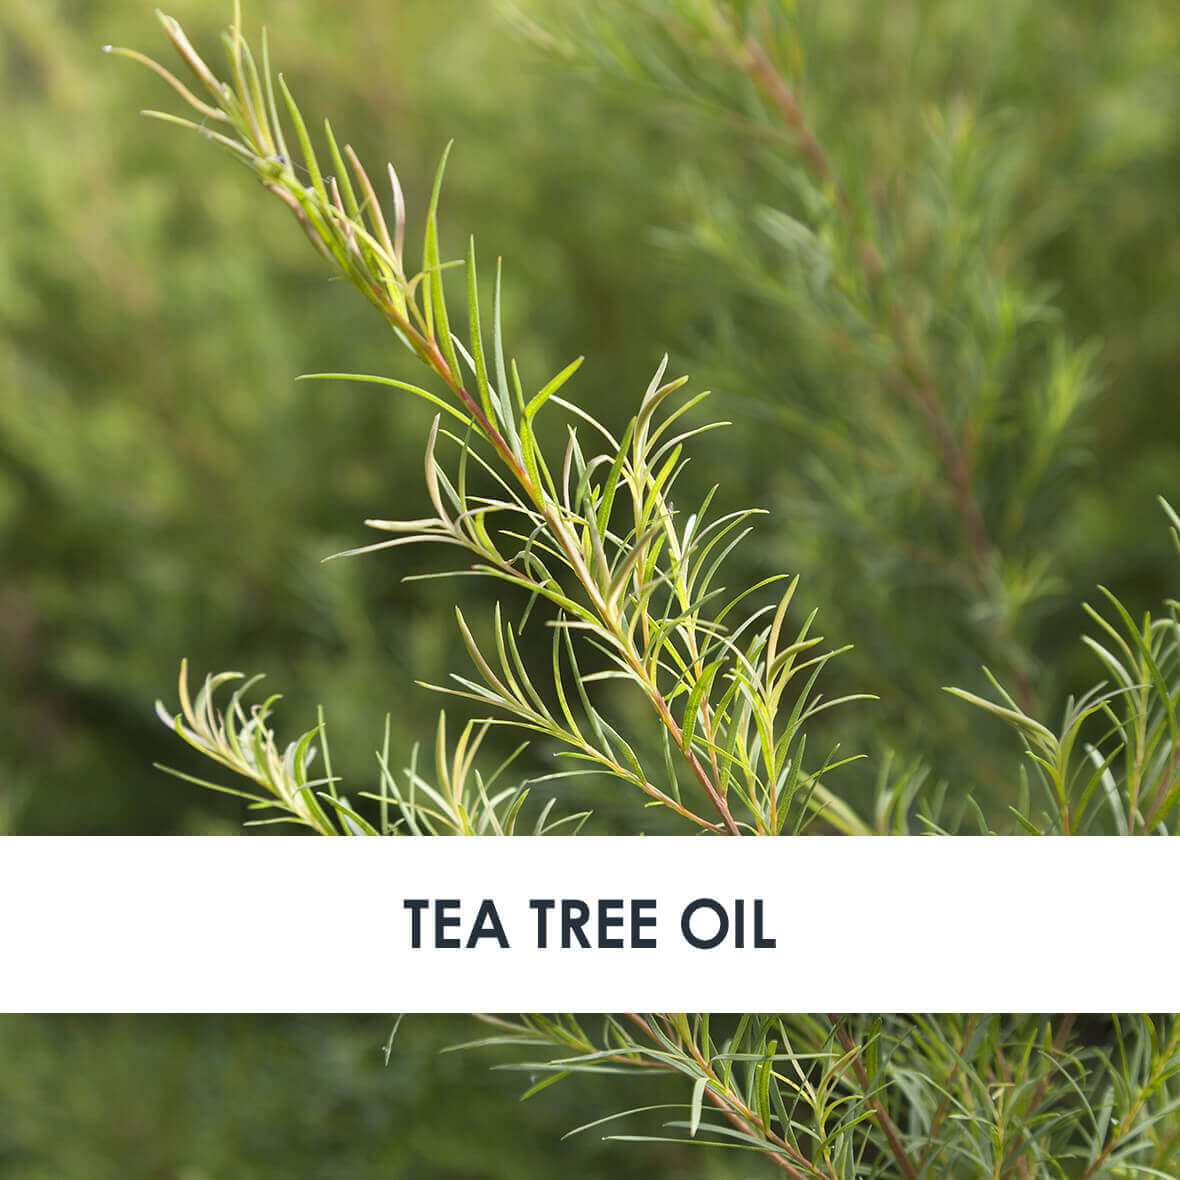 Tea Tree Oil Skincare Benefits